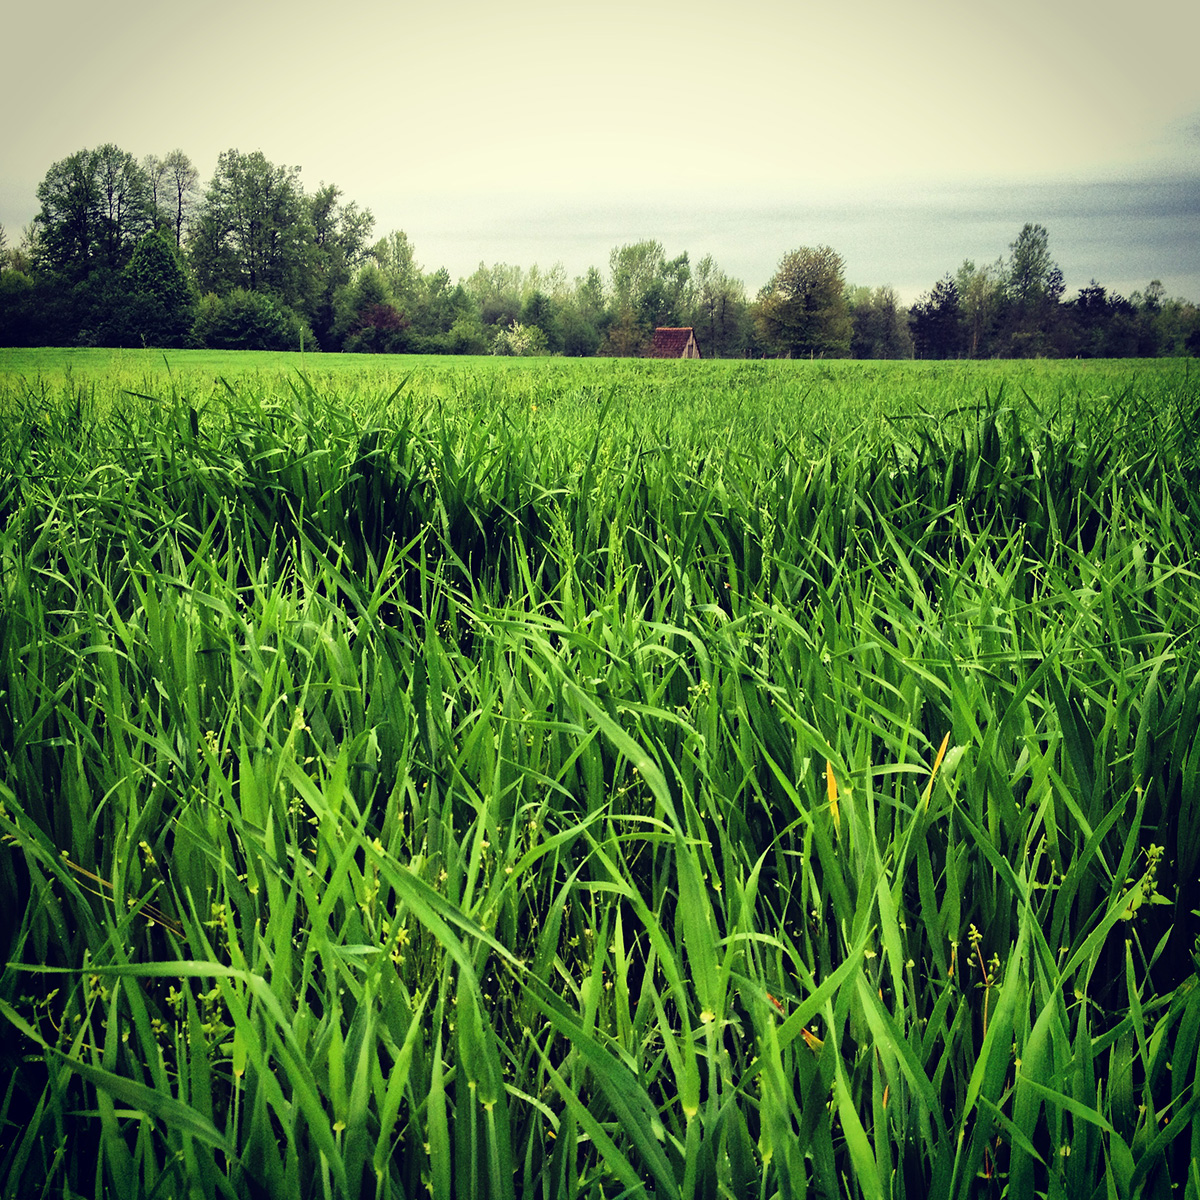 fields and grass - photo #19